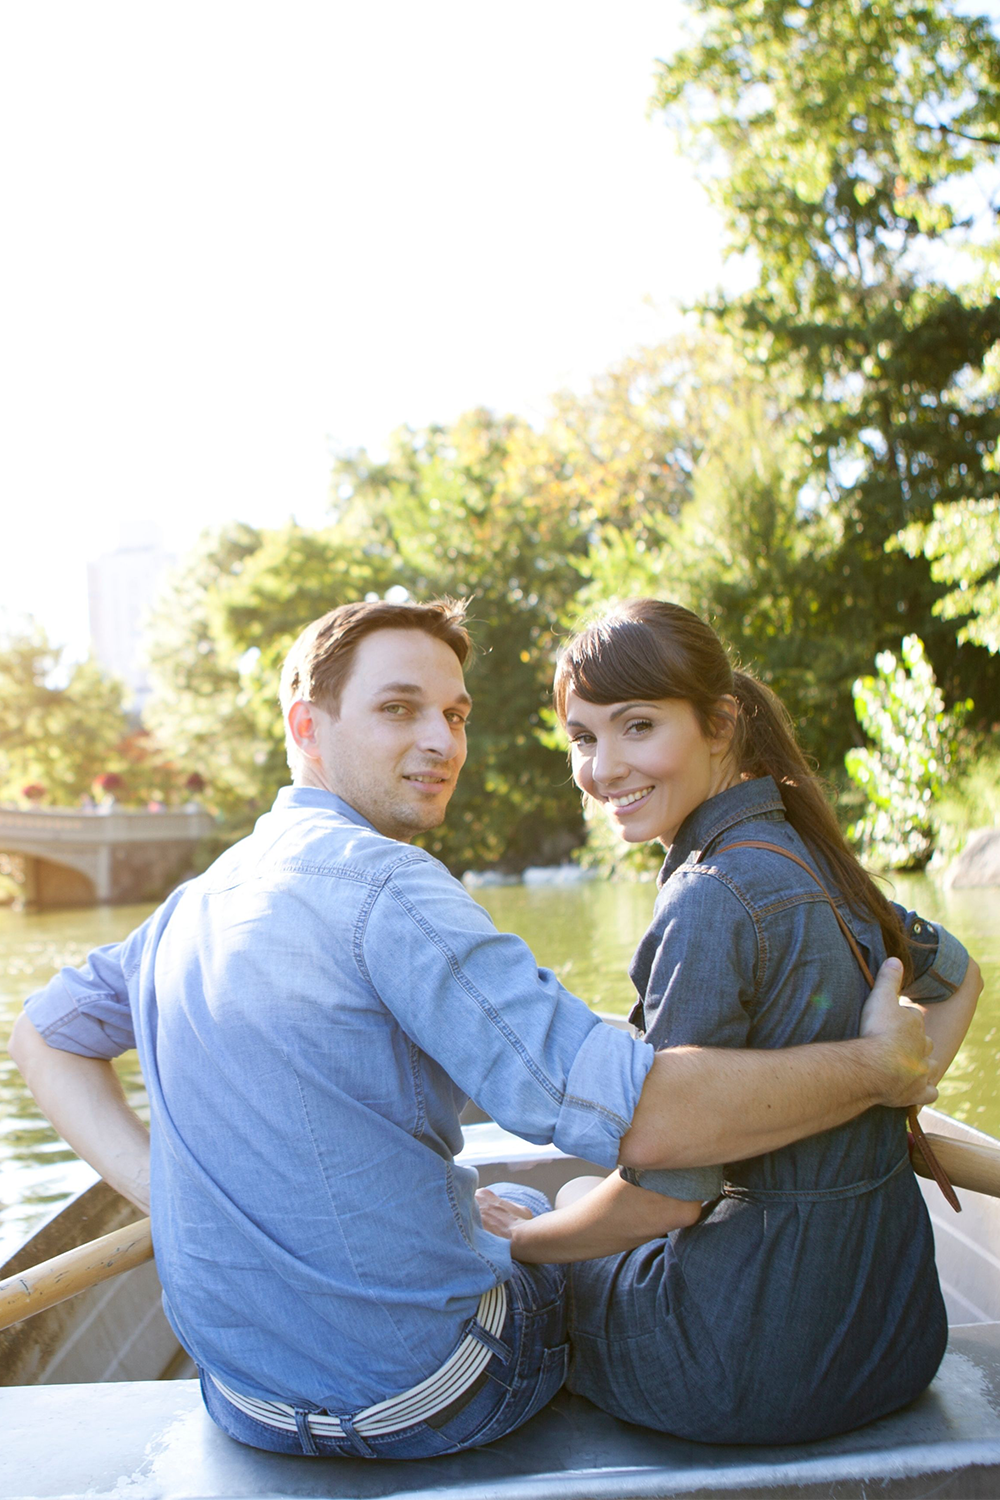 Fall Engagement Photos Ideas take a boat ride